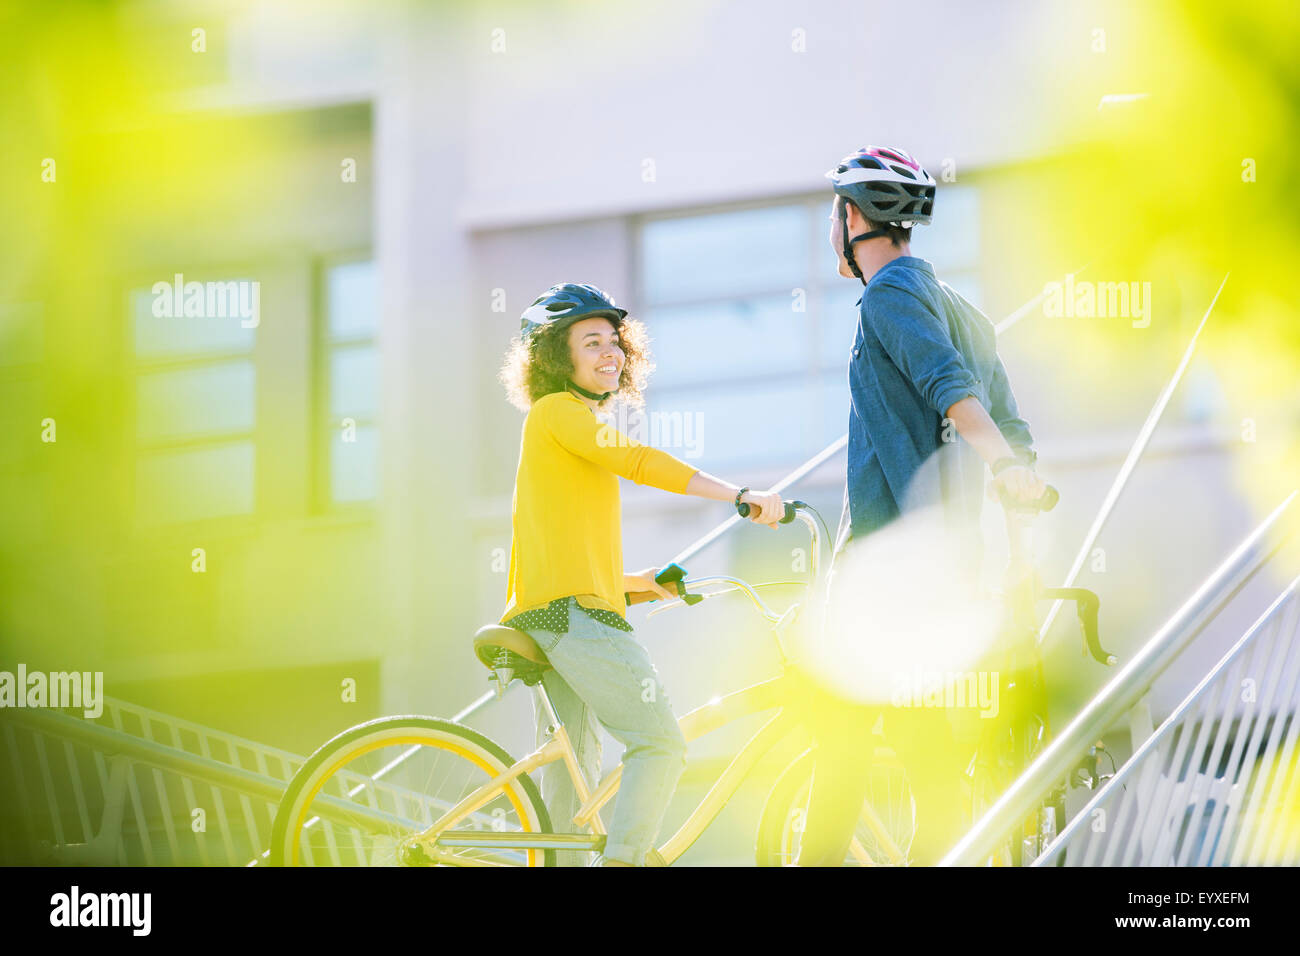 Man and woman with helmets on bicycles talking Stock Photo